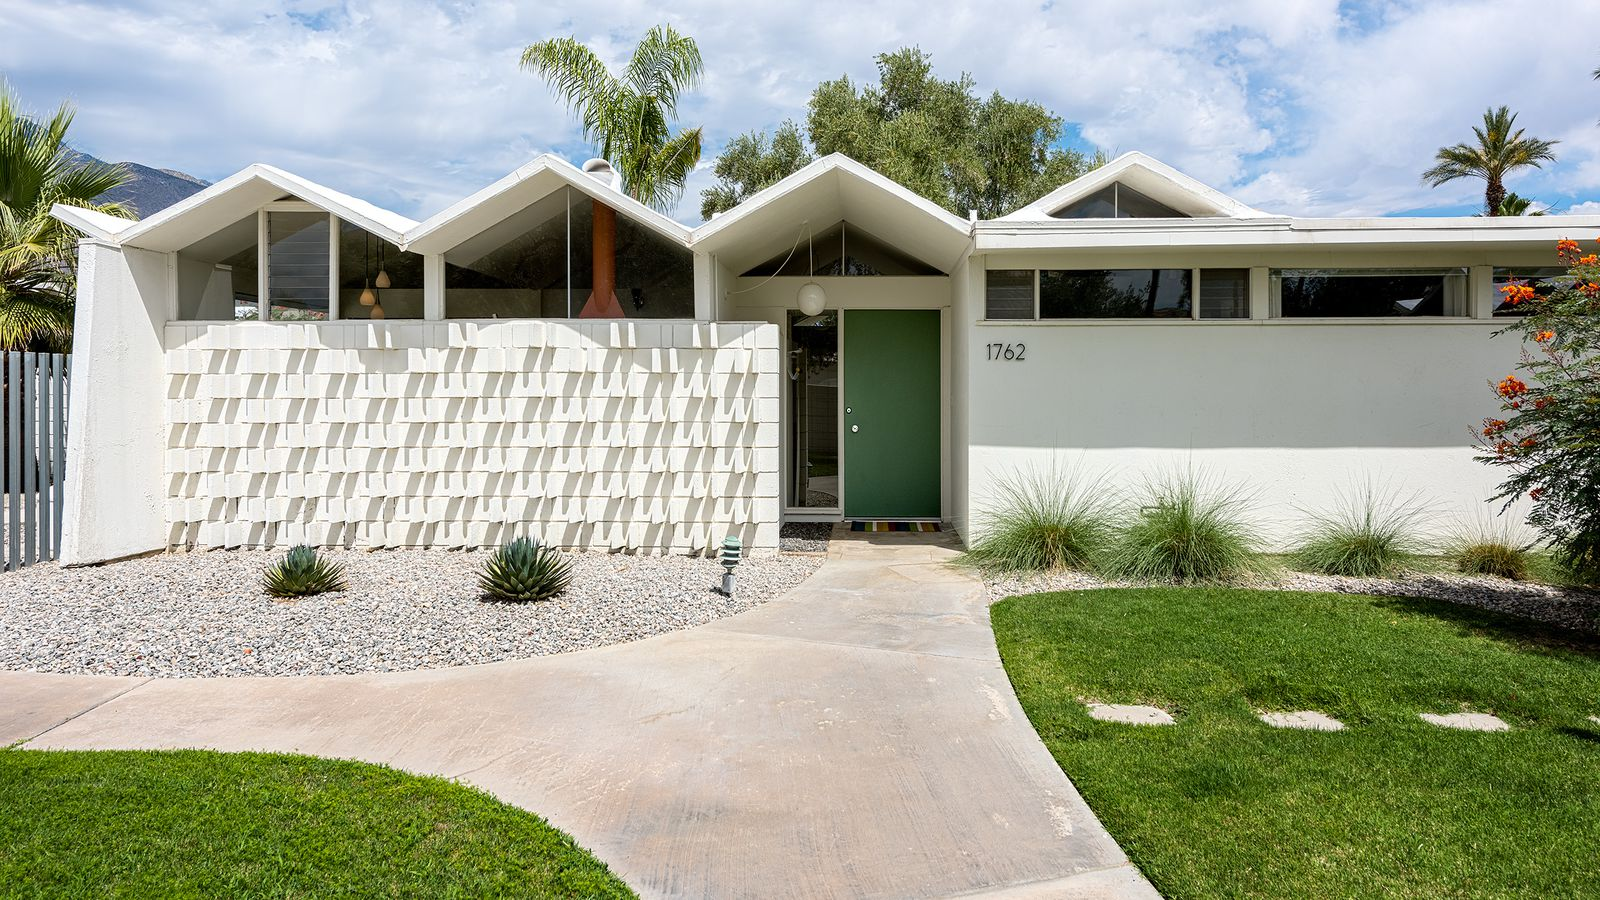 Modernist palm springs condo seeks 469k curbed la for Palm springs for sale by owner